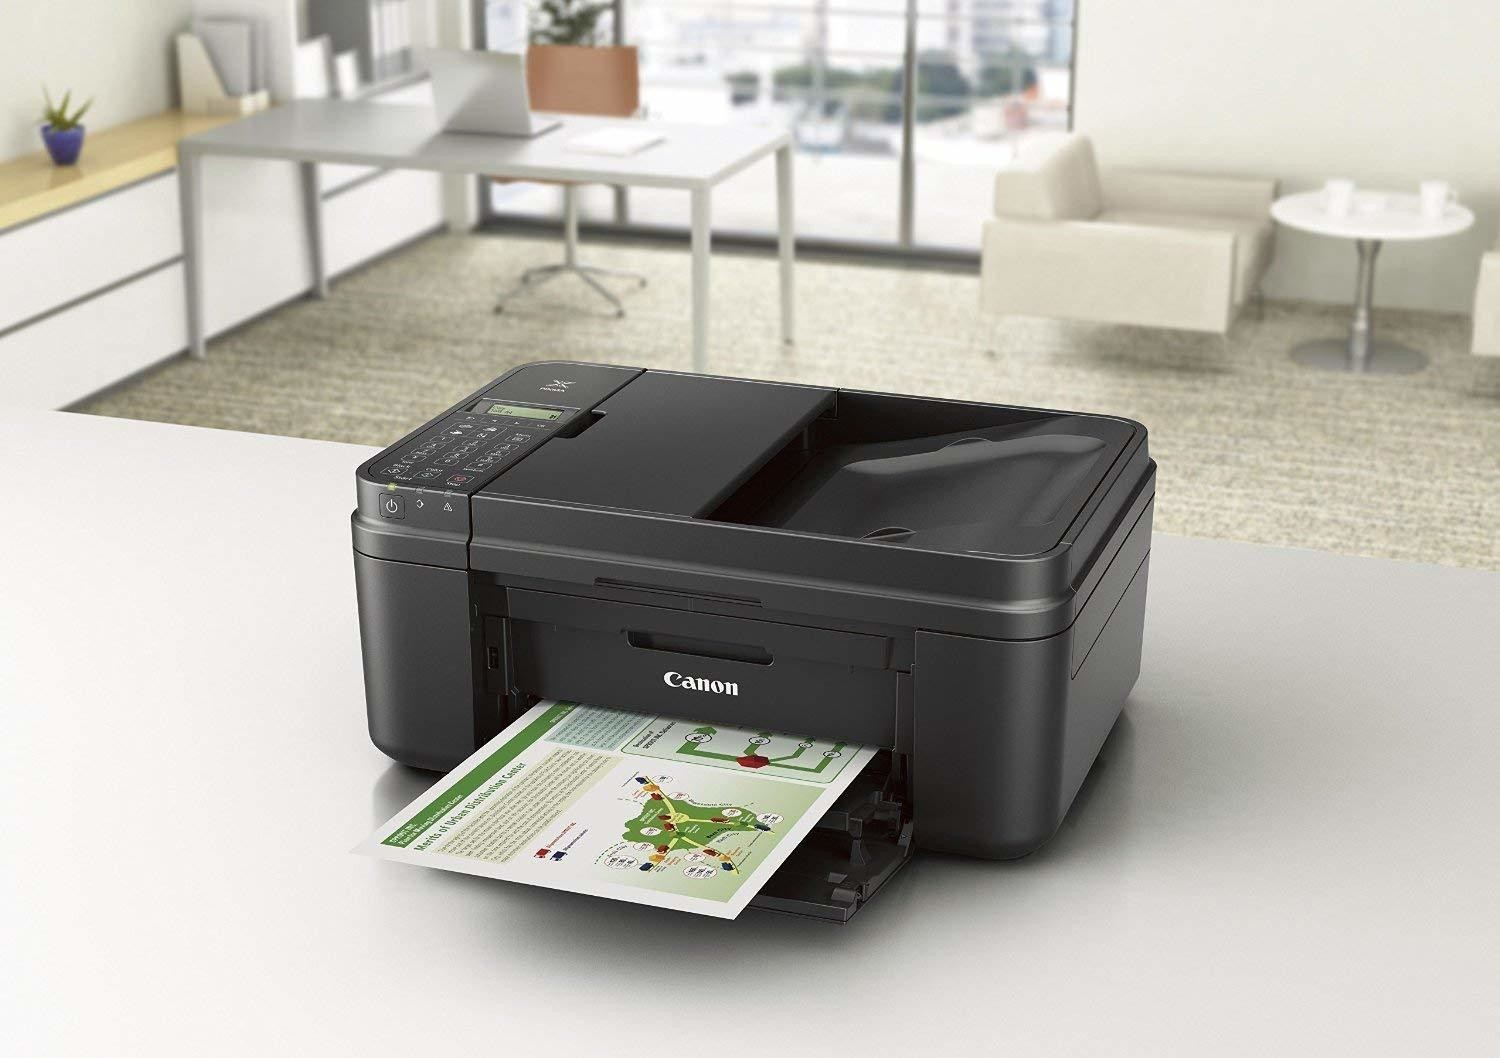 Canon PIXMA MX490 Wireless Office All-in-One Inkjet Printer/Copier/Scanner/Fax Machine